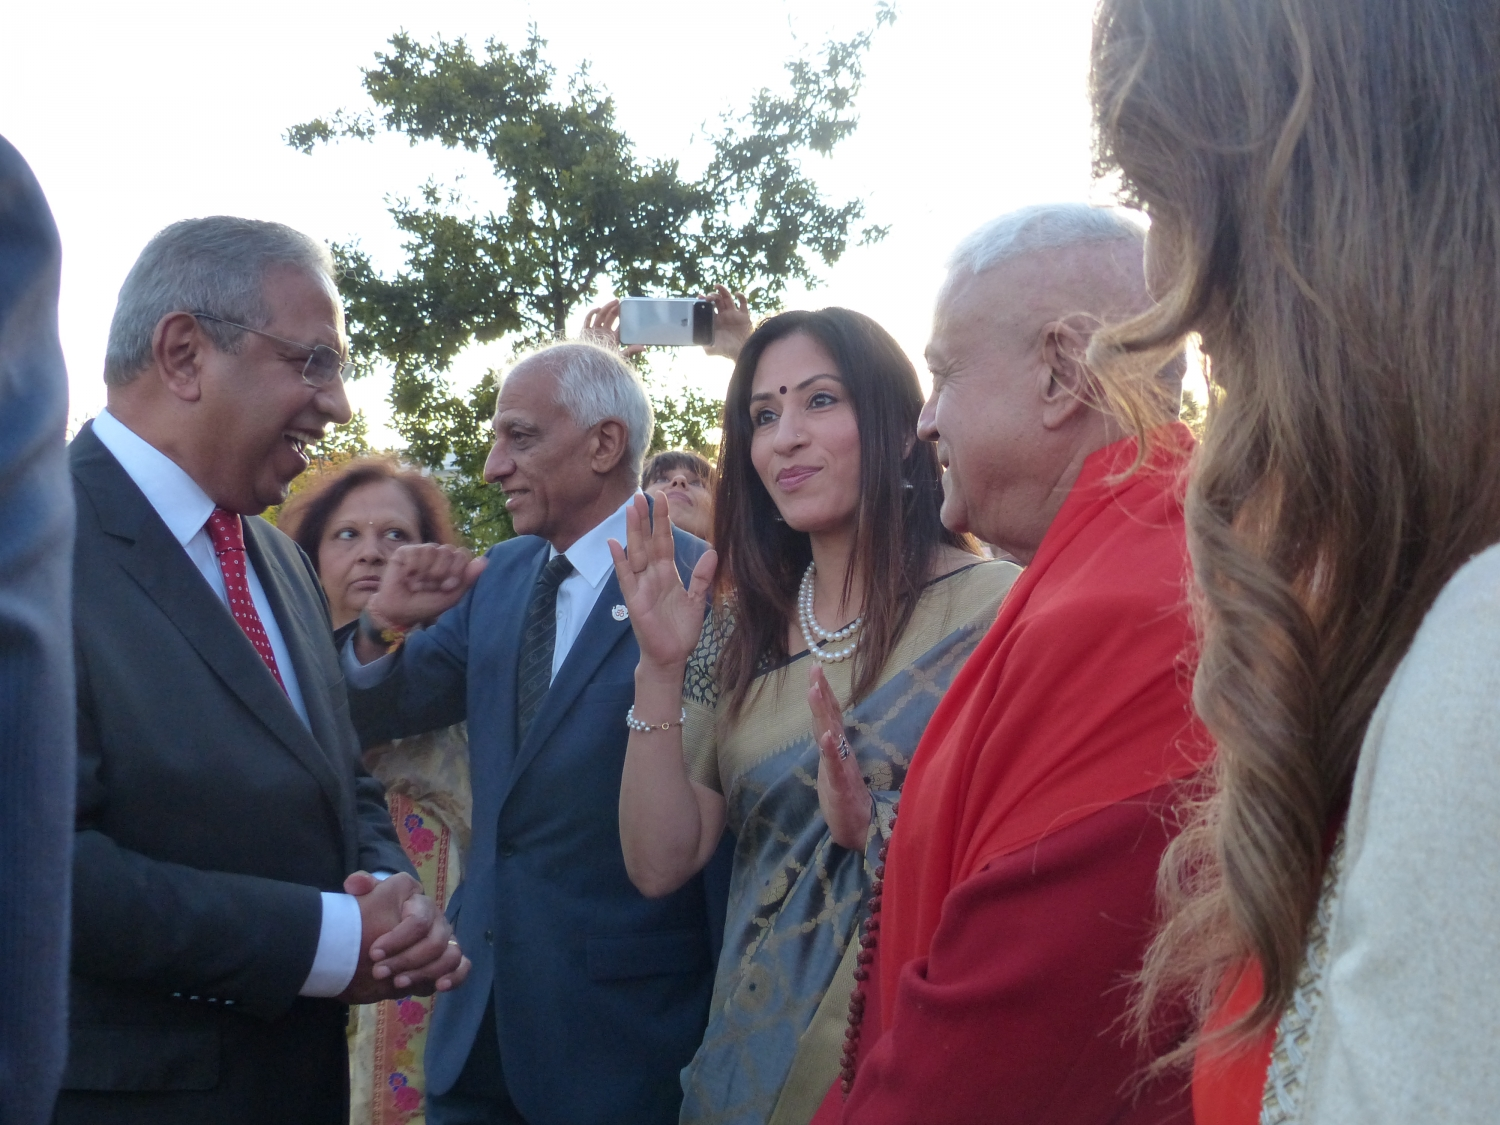 150th Anniversary of the Birthday of Gandhi Jí - 2019, October, 2nd - Hindu Community of Portugal